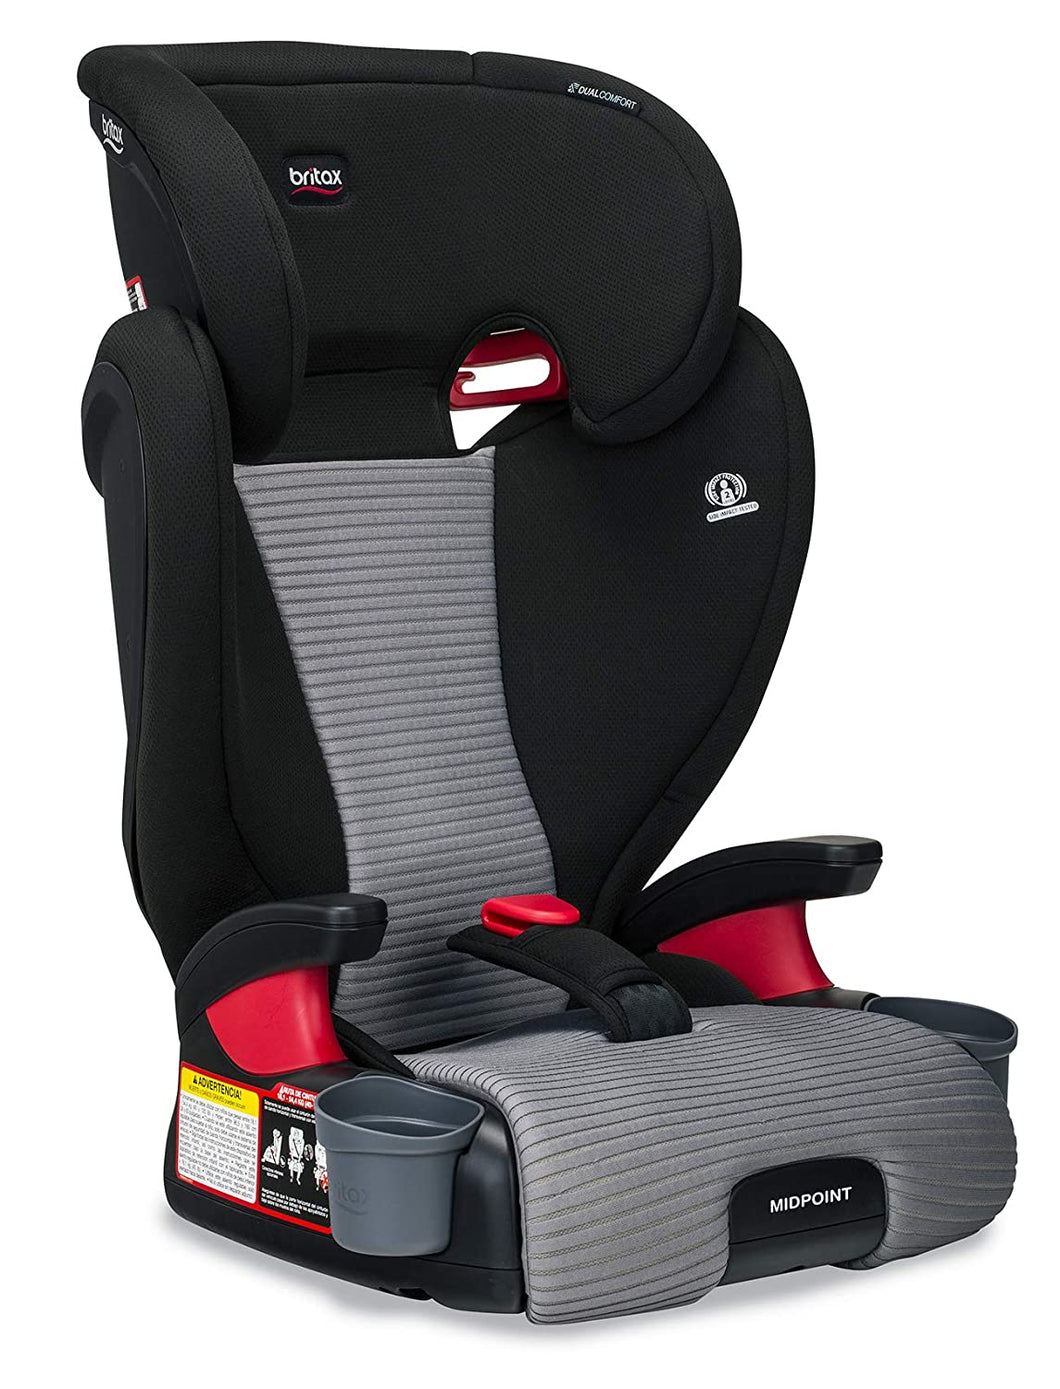 Midpoint Belt-Positioning Booster Seat - 2 Layer Impact Protection - 40 to 120 Pounds - DualComfort Moisture Wicking Fabric, Gray